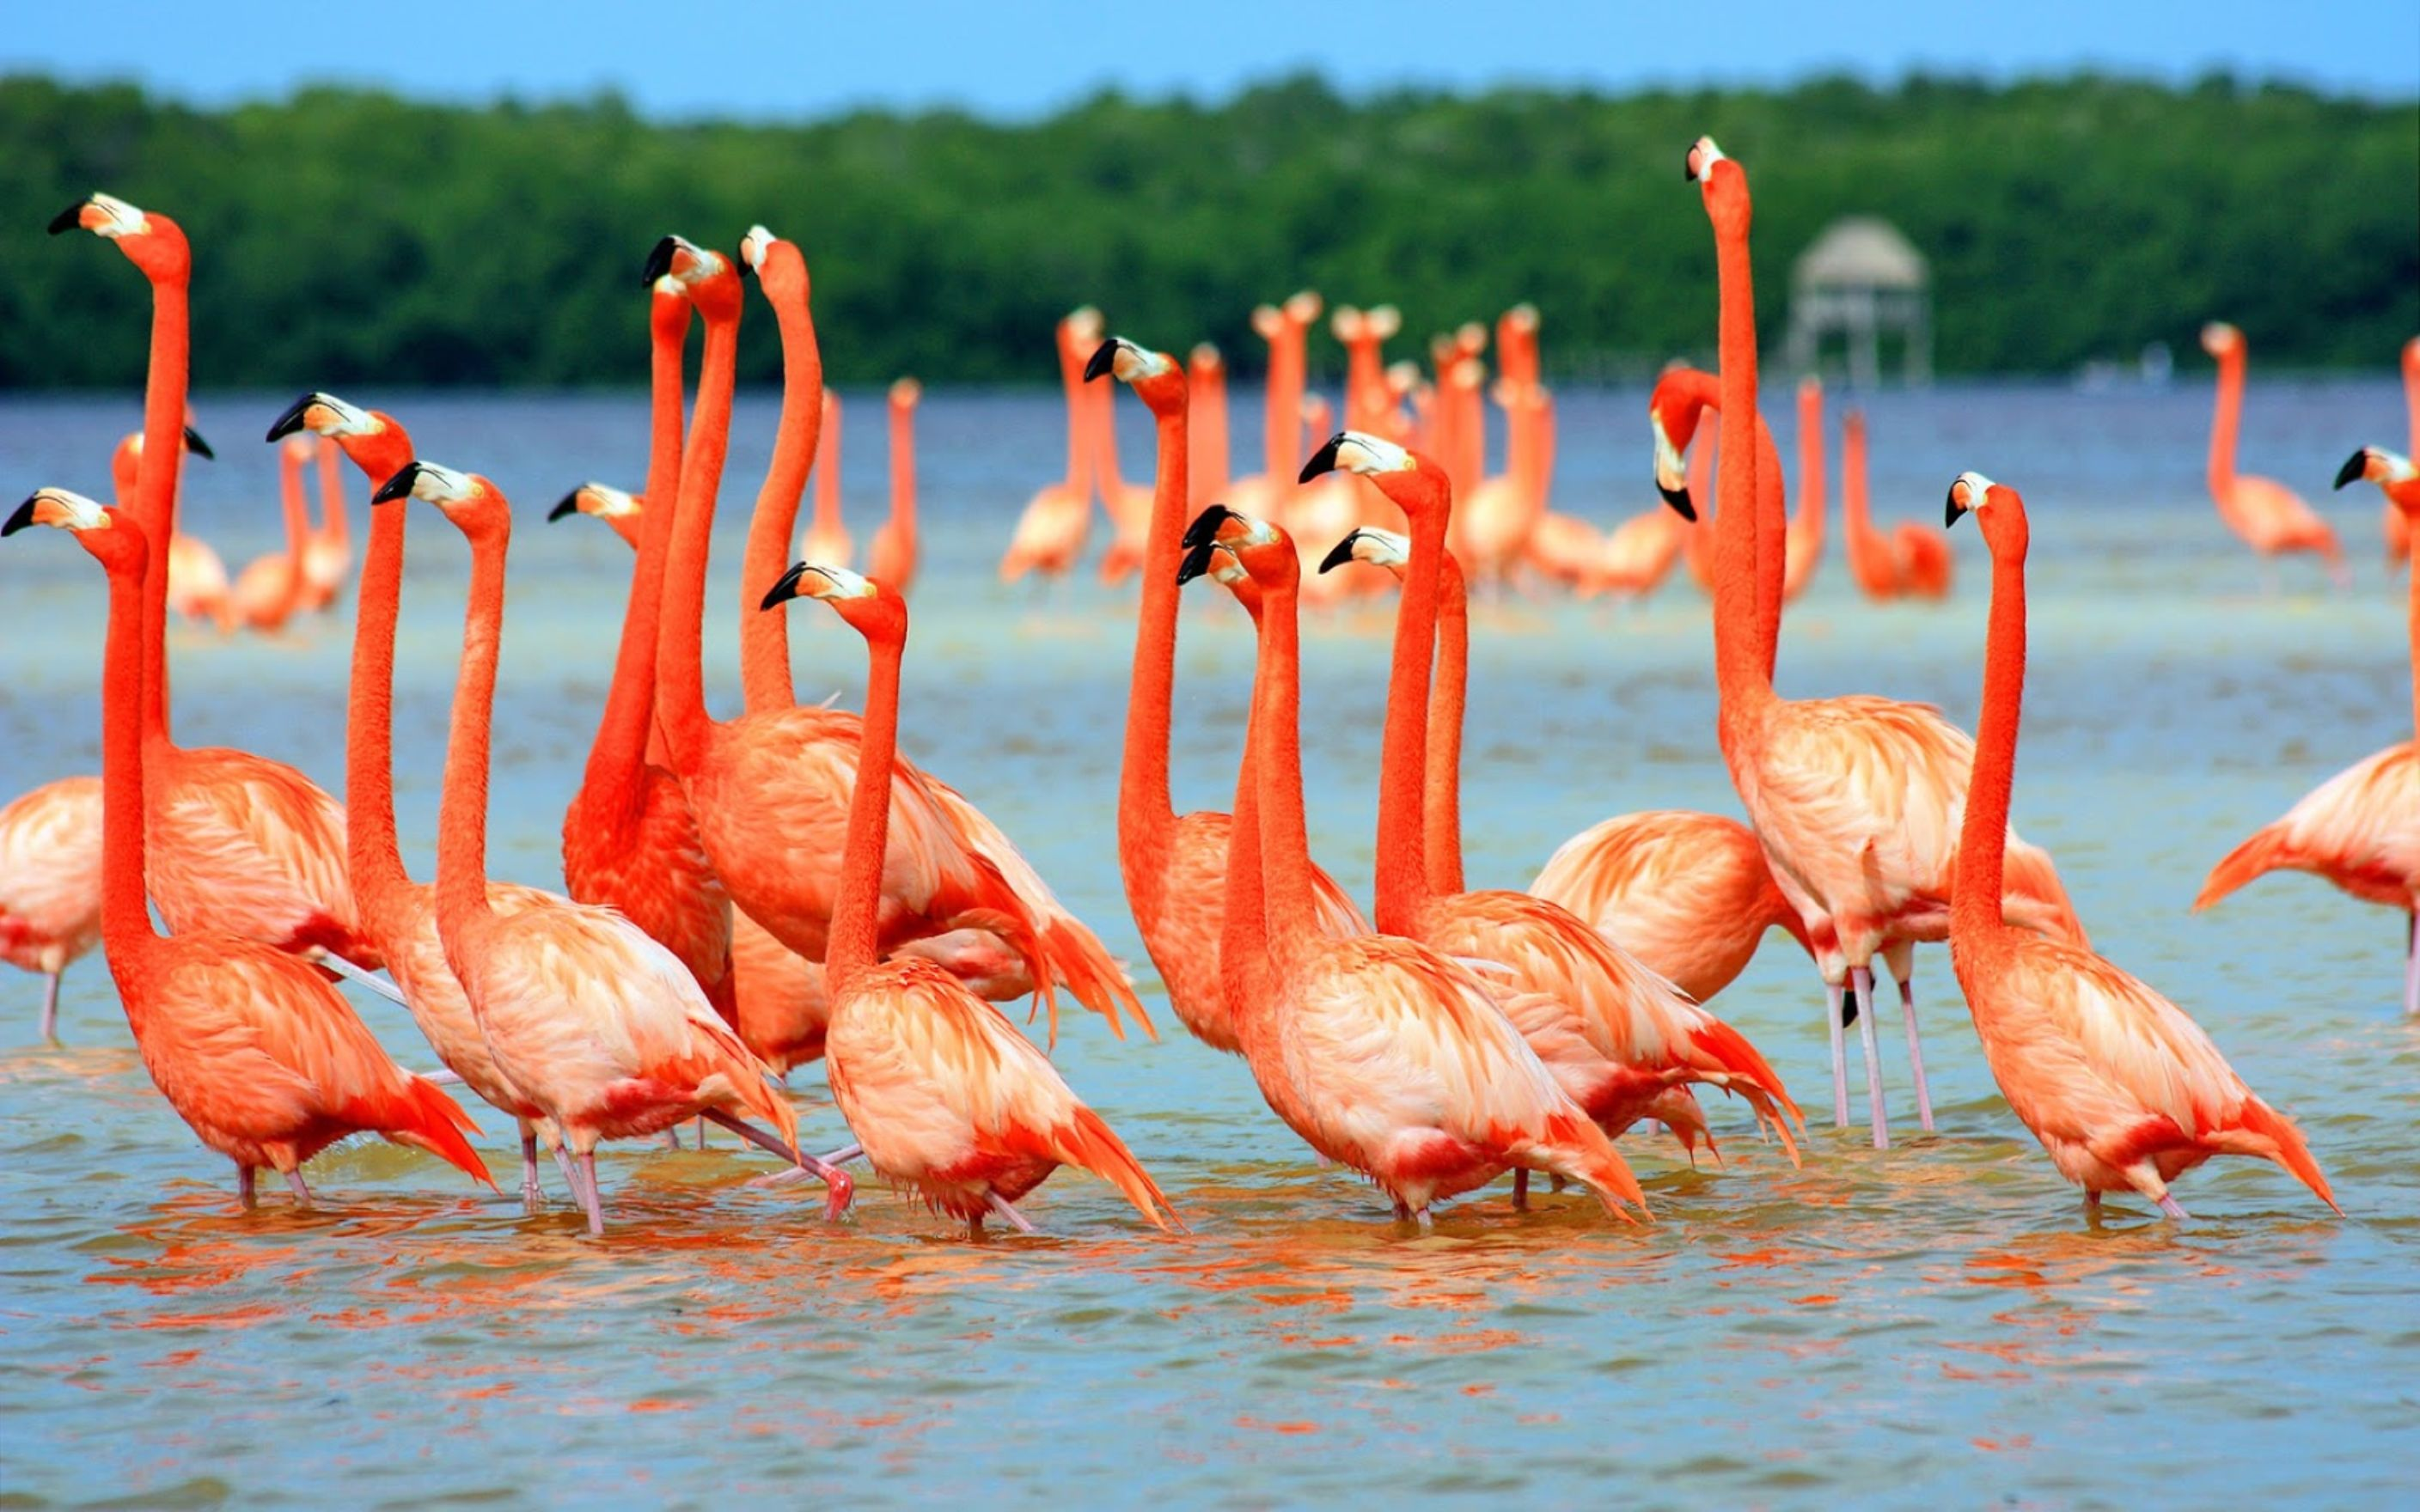 Download free HD Flamingo Birds In Water Wallpaper, image